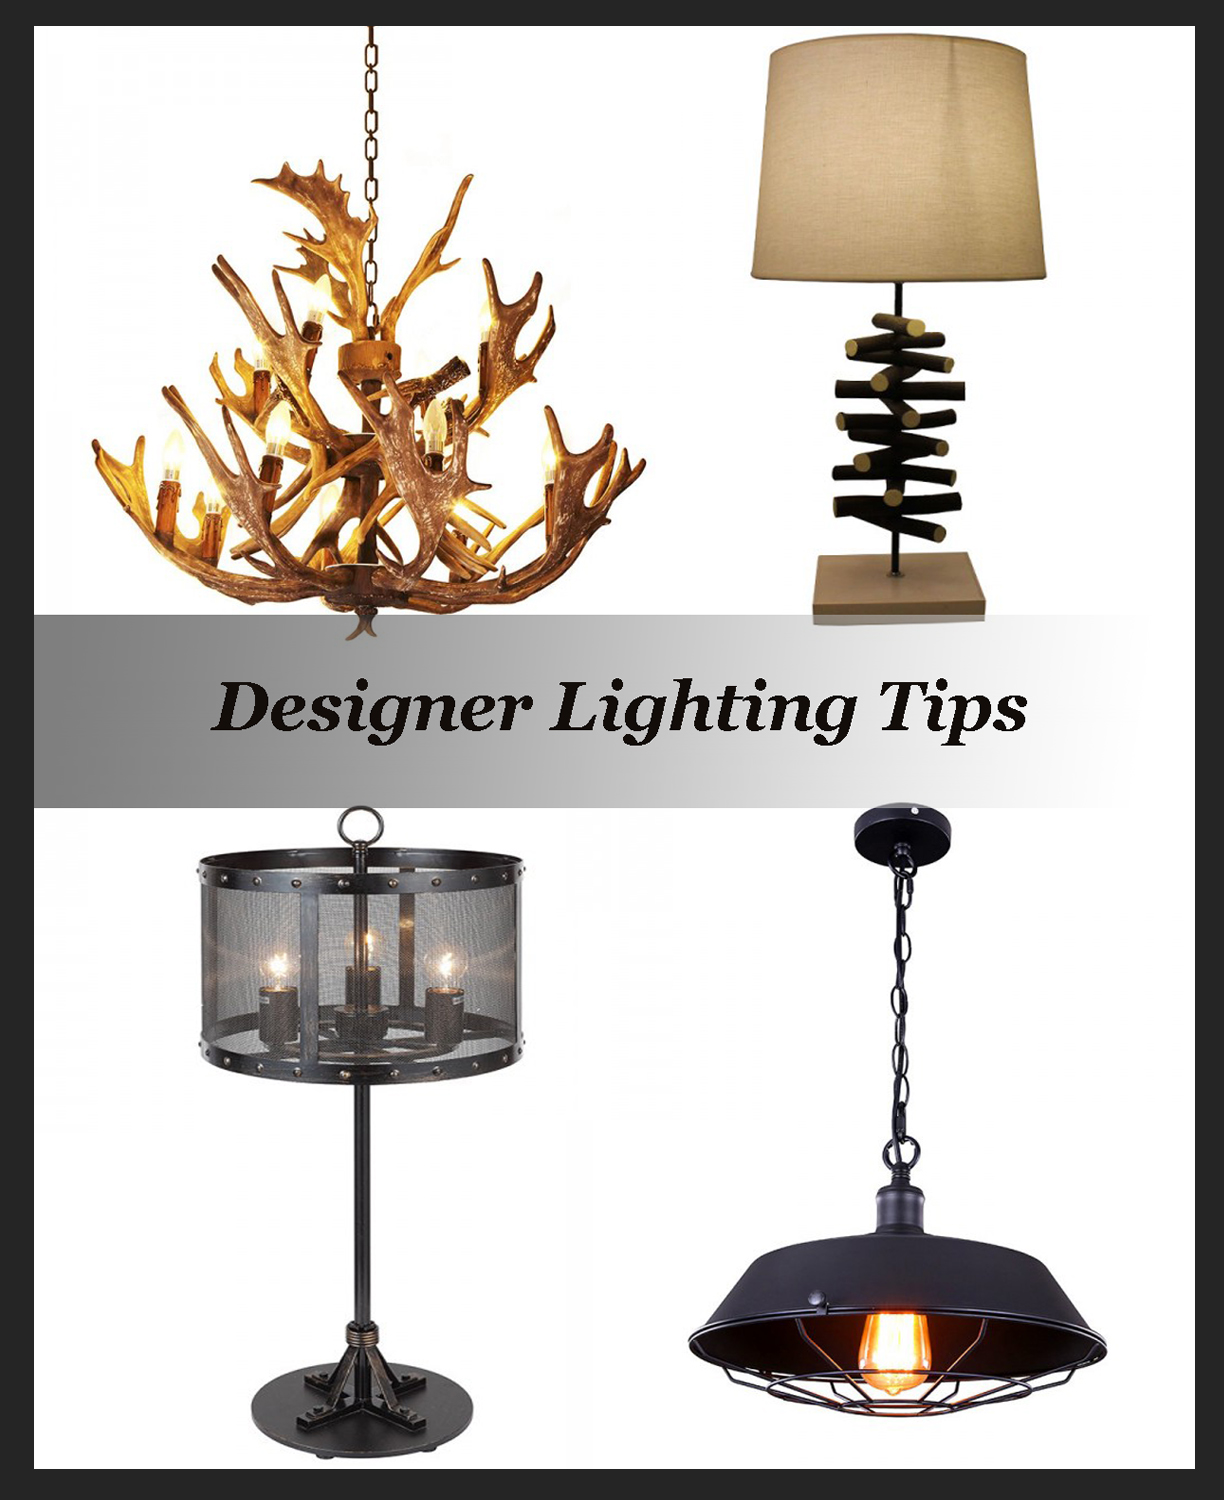 Interior design tips archives page 2 of 3 for Interior design lighting techniques